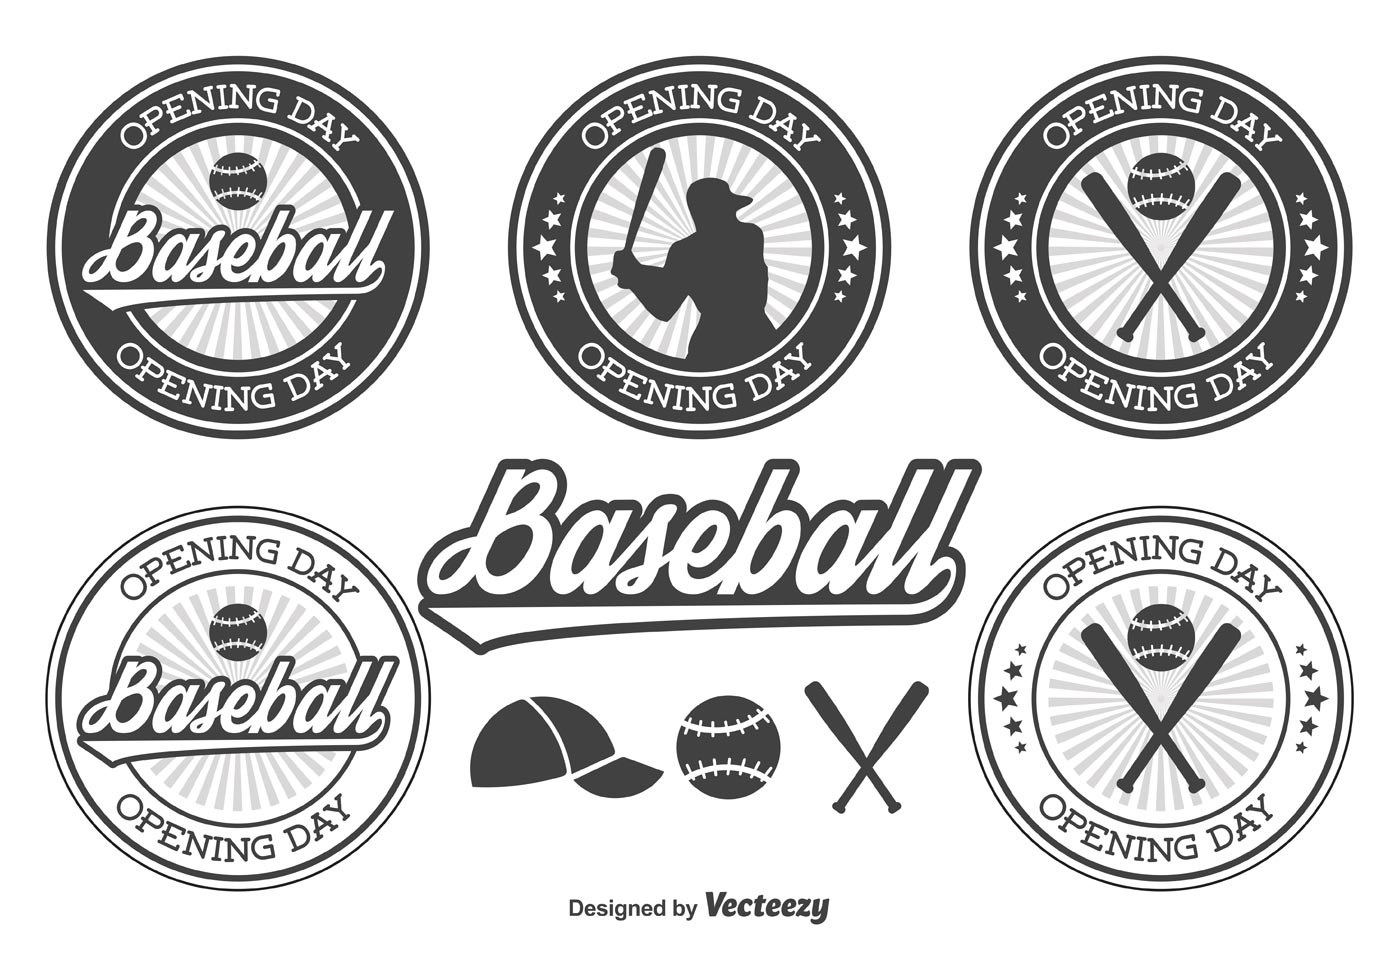 Baseball Opening Day Badges Download Free Vector Art